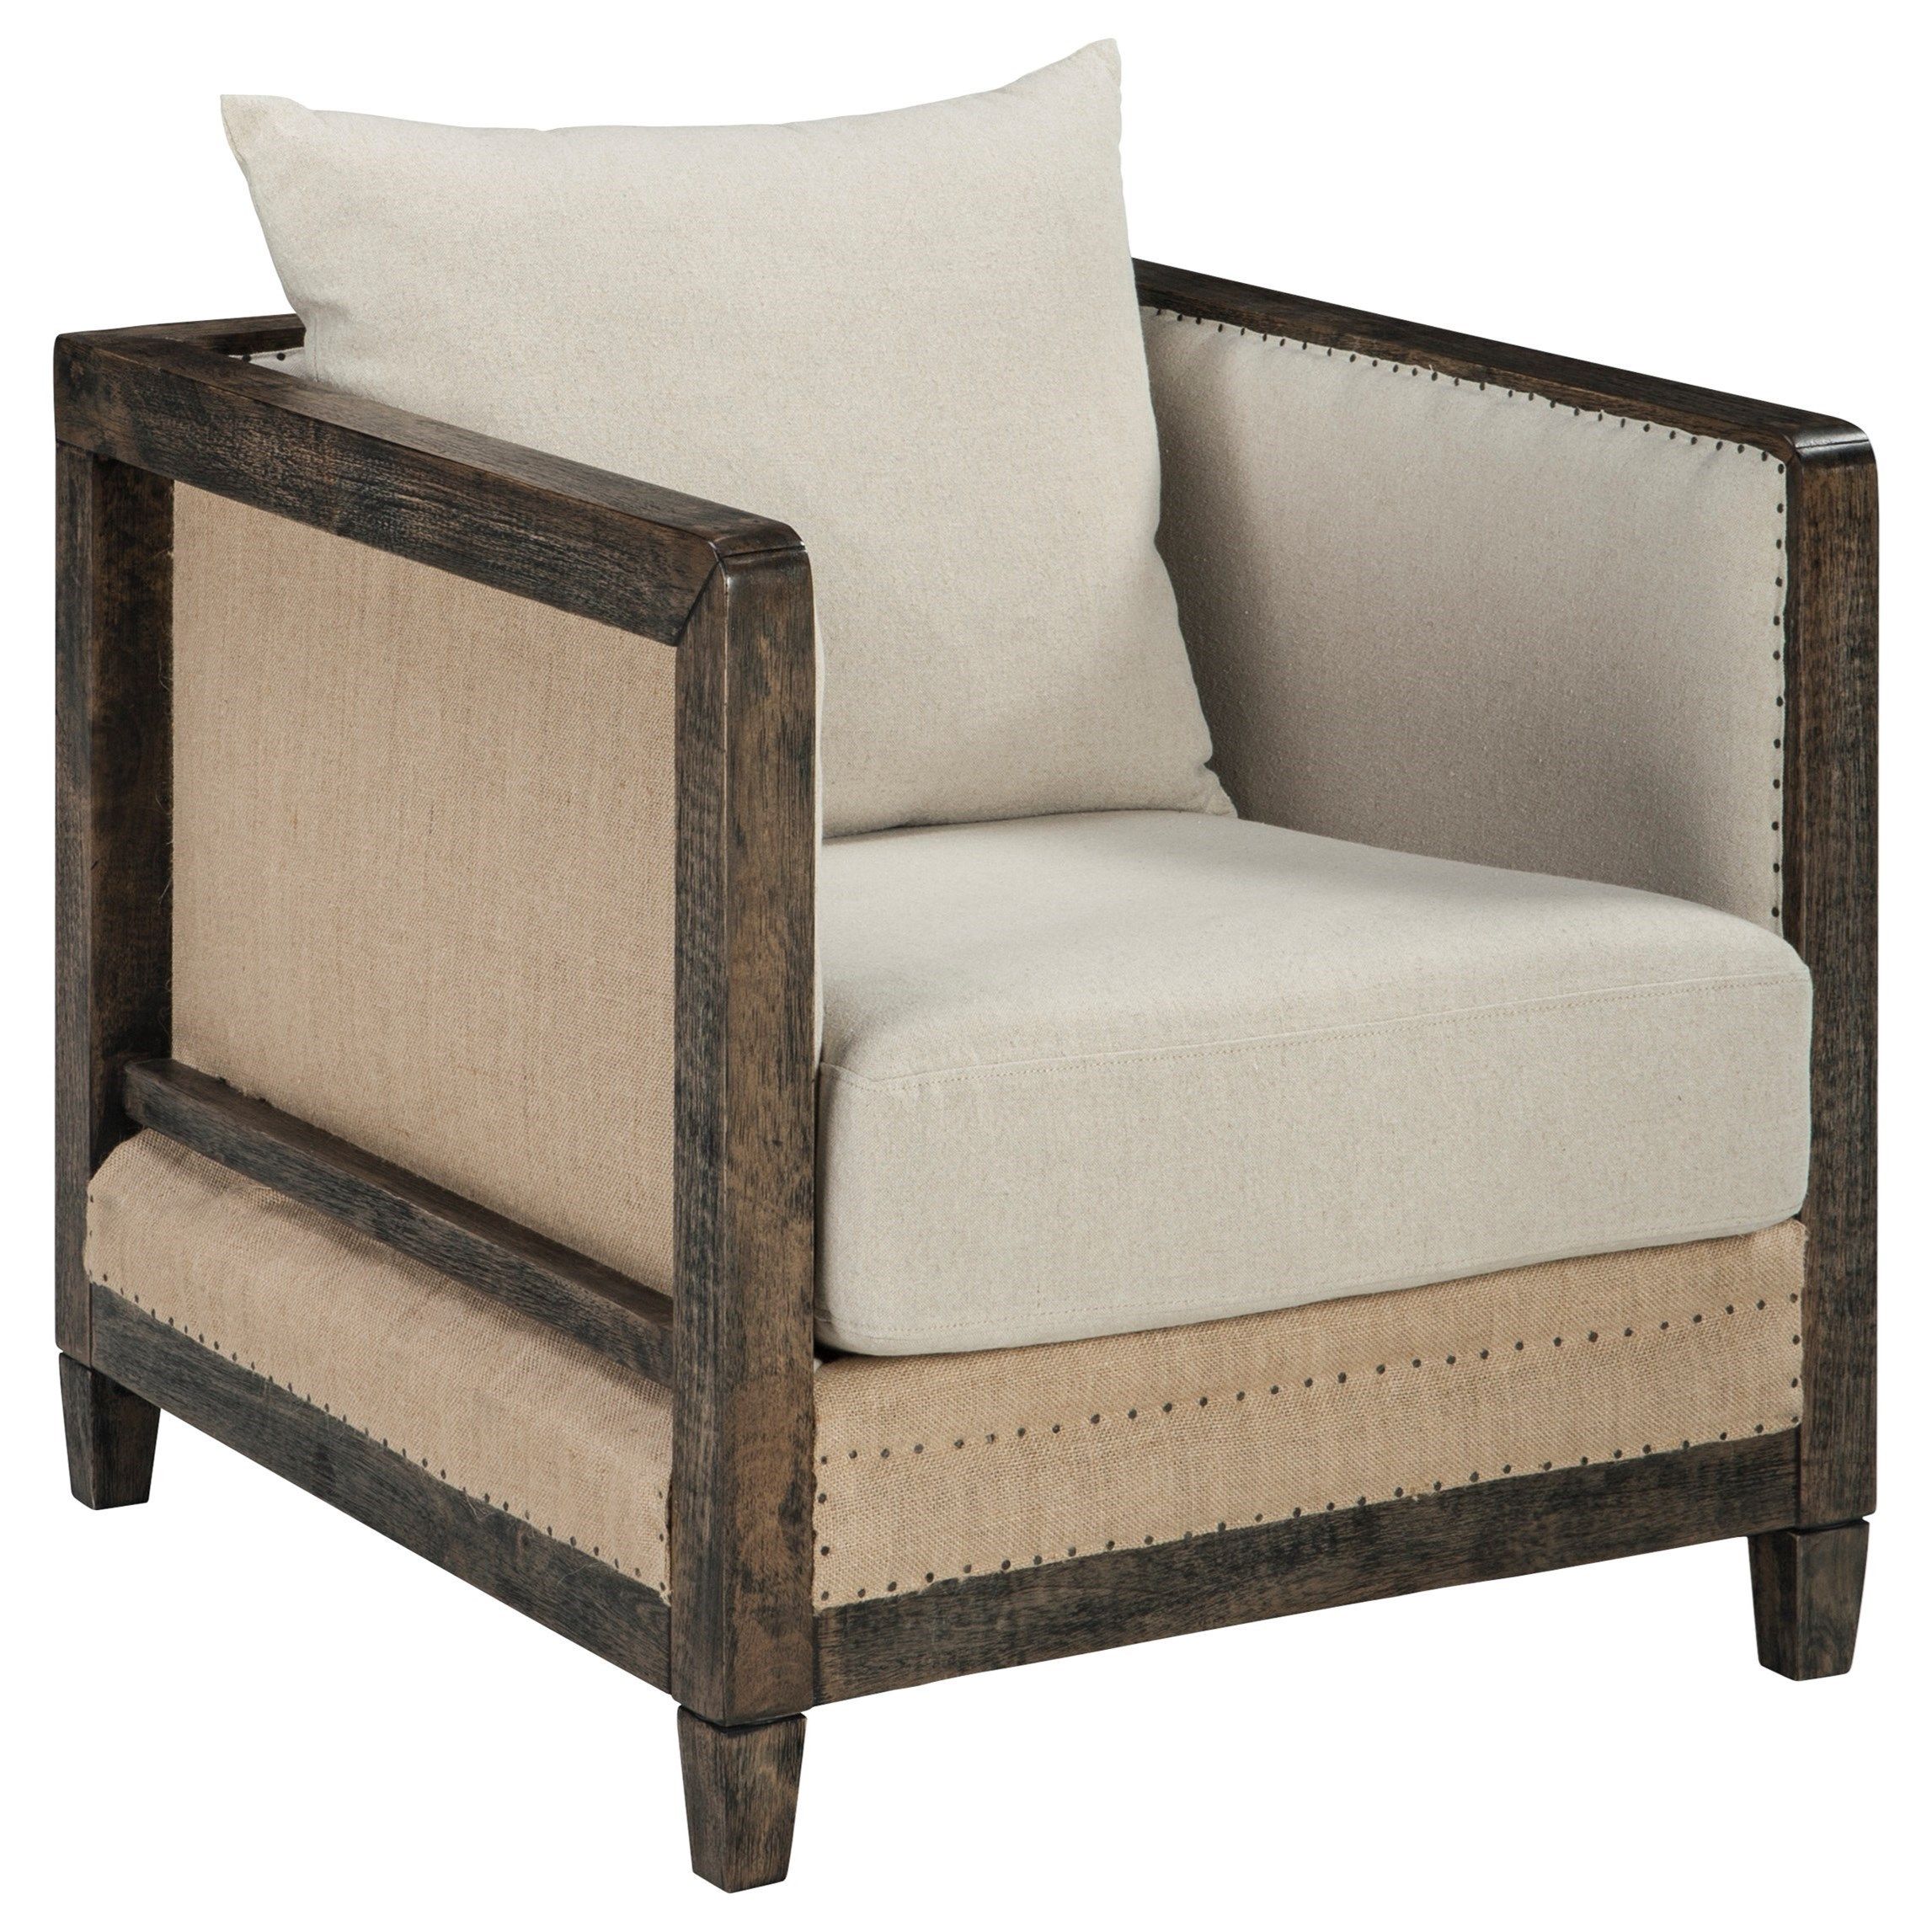 Signature Design by Ashley Copeland Deconstructed Style Linen Fabric Accent Chair with Wood Frame  sc 1 st  Royal Furniture & Signature Design by Ashley Copeland Deconstructed Style Linen Fabric ...